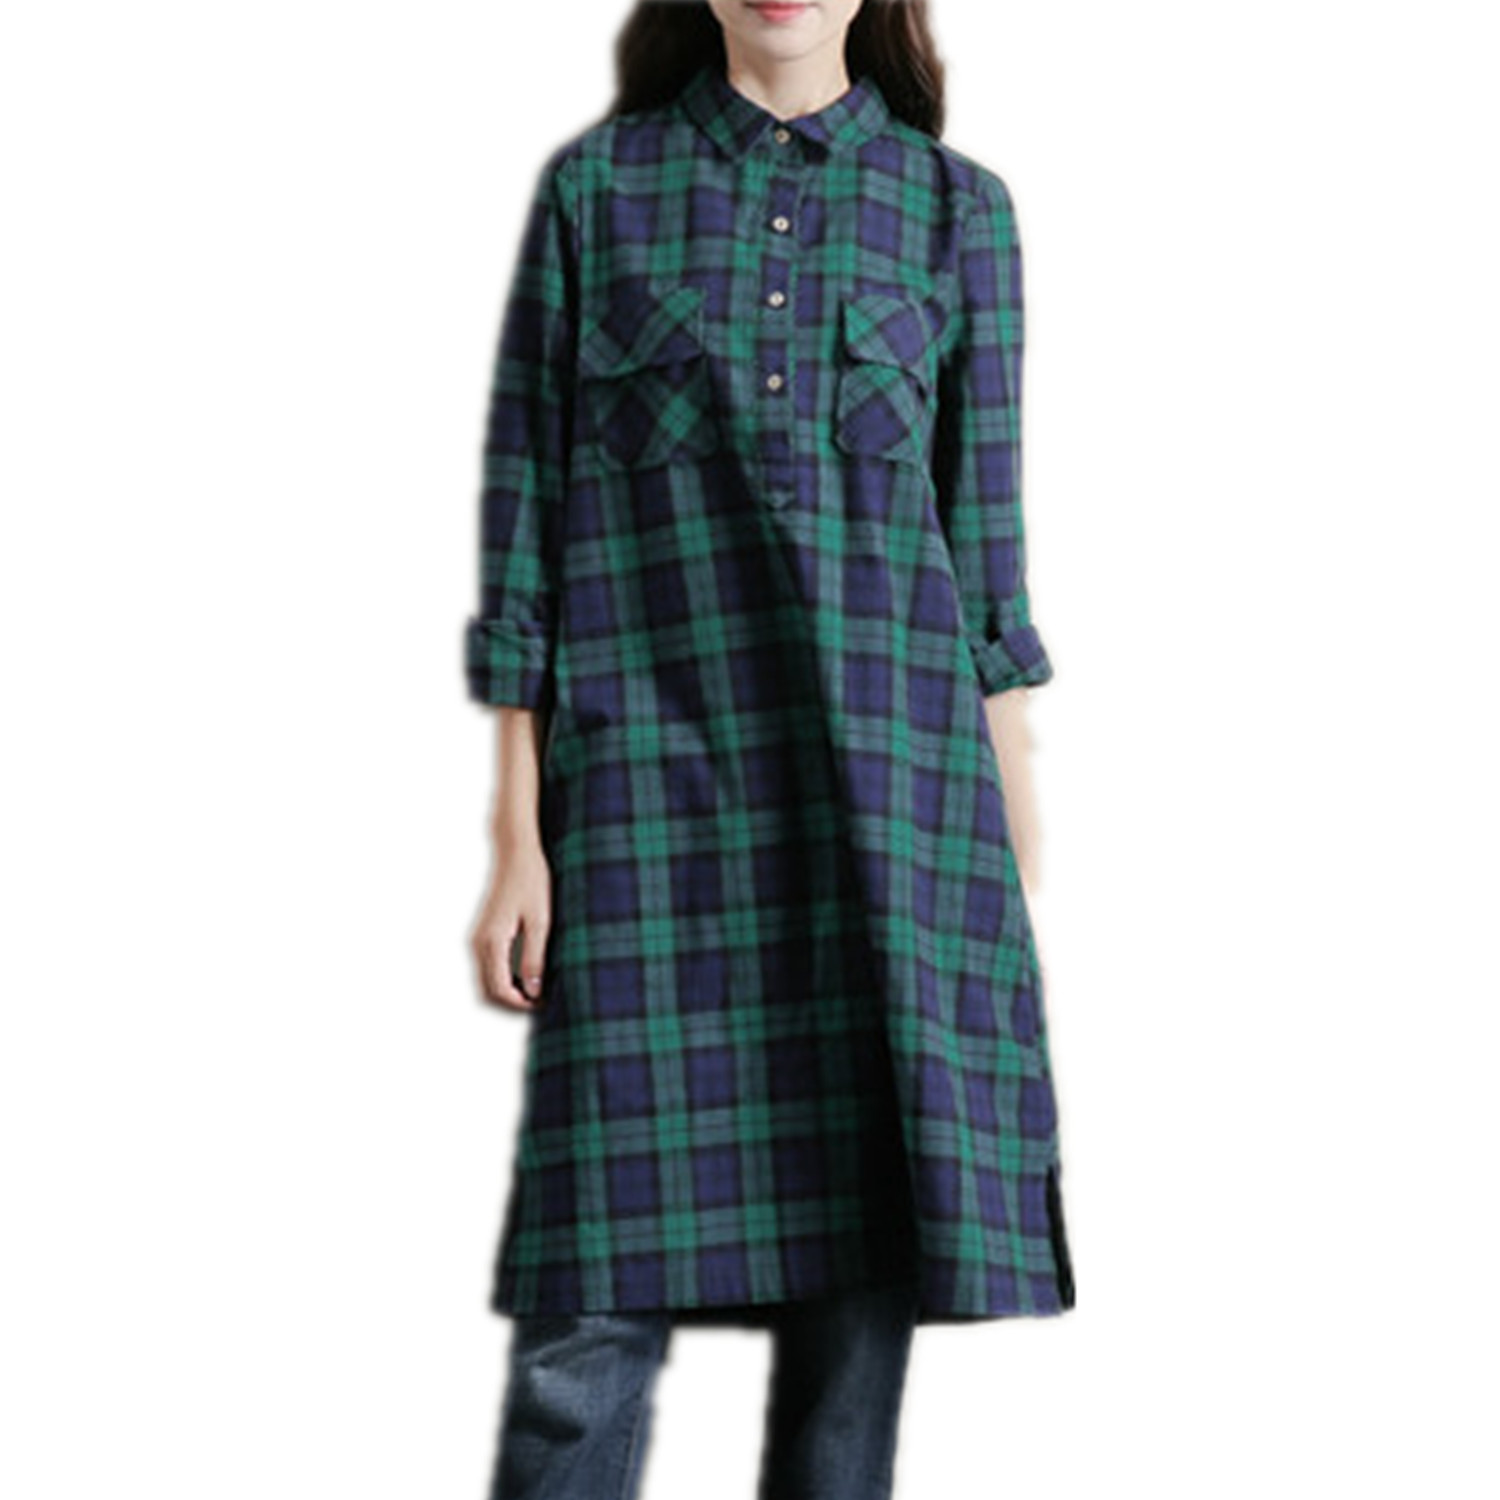 mango shirt dress reviews online shopping mango shirt. Black Bedroom Furniture Sets. Home Design Ideas